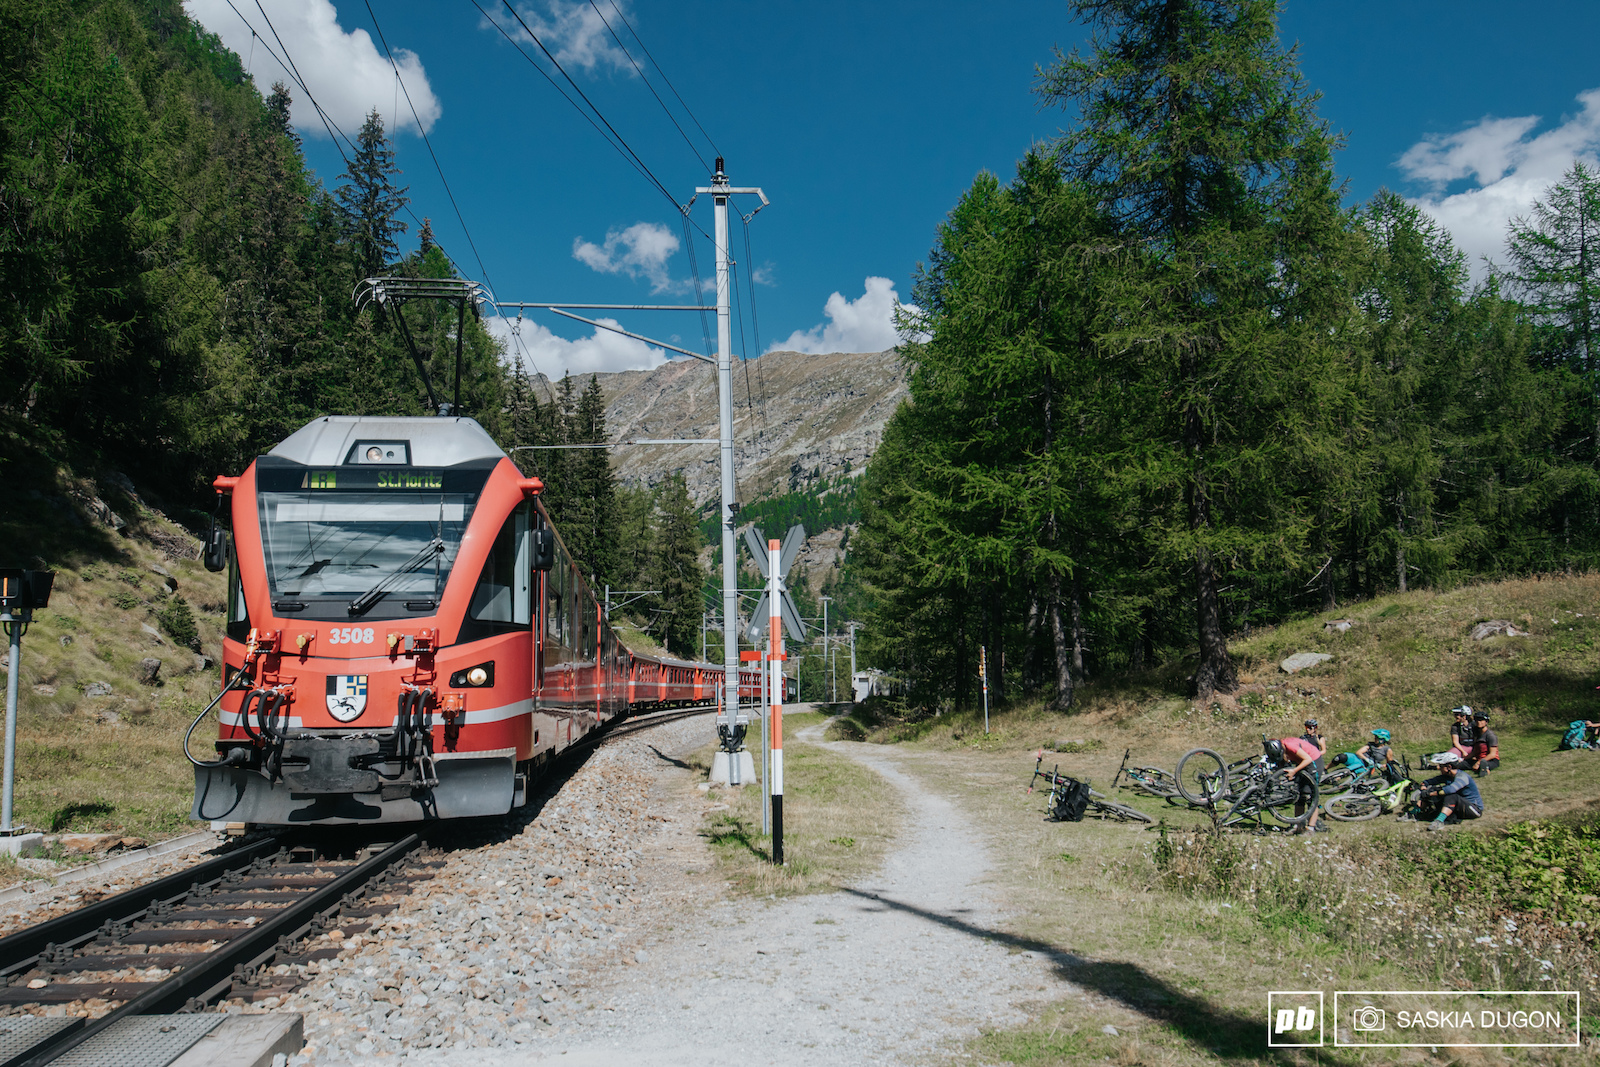 One of the many alpine railways venturing up and down the alpine passes.